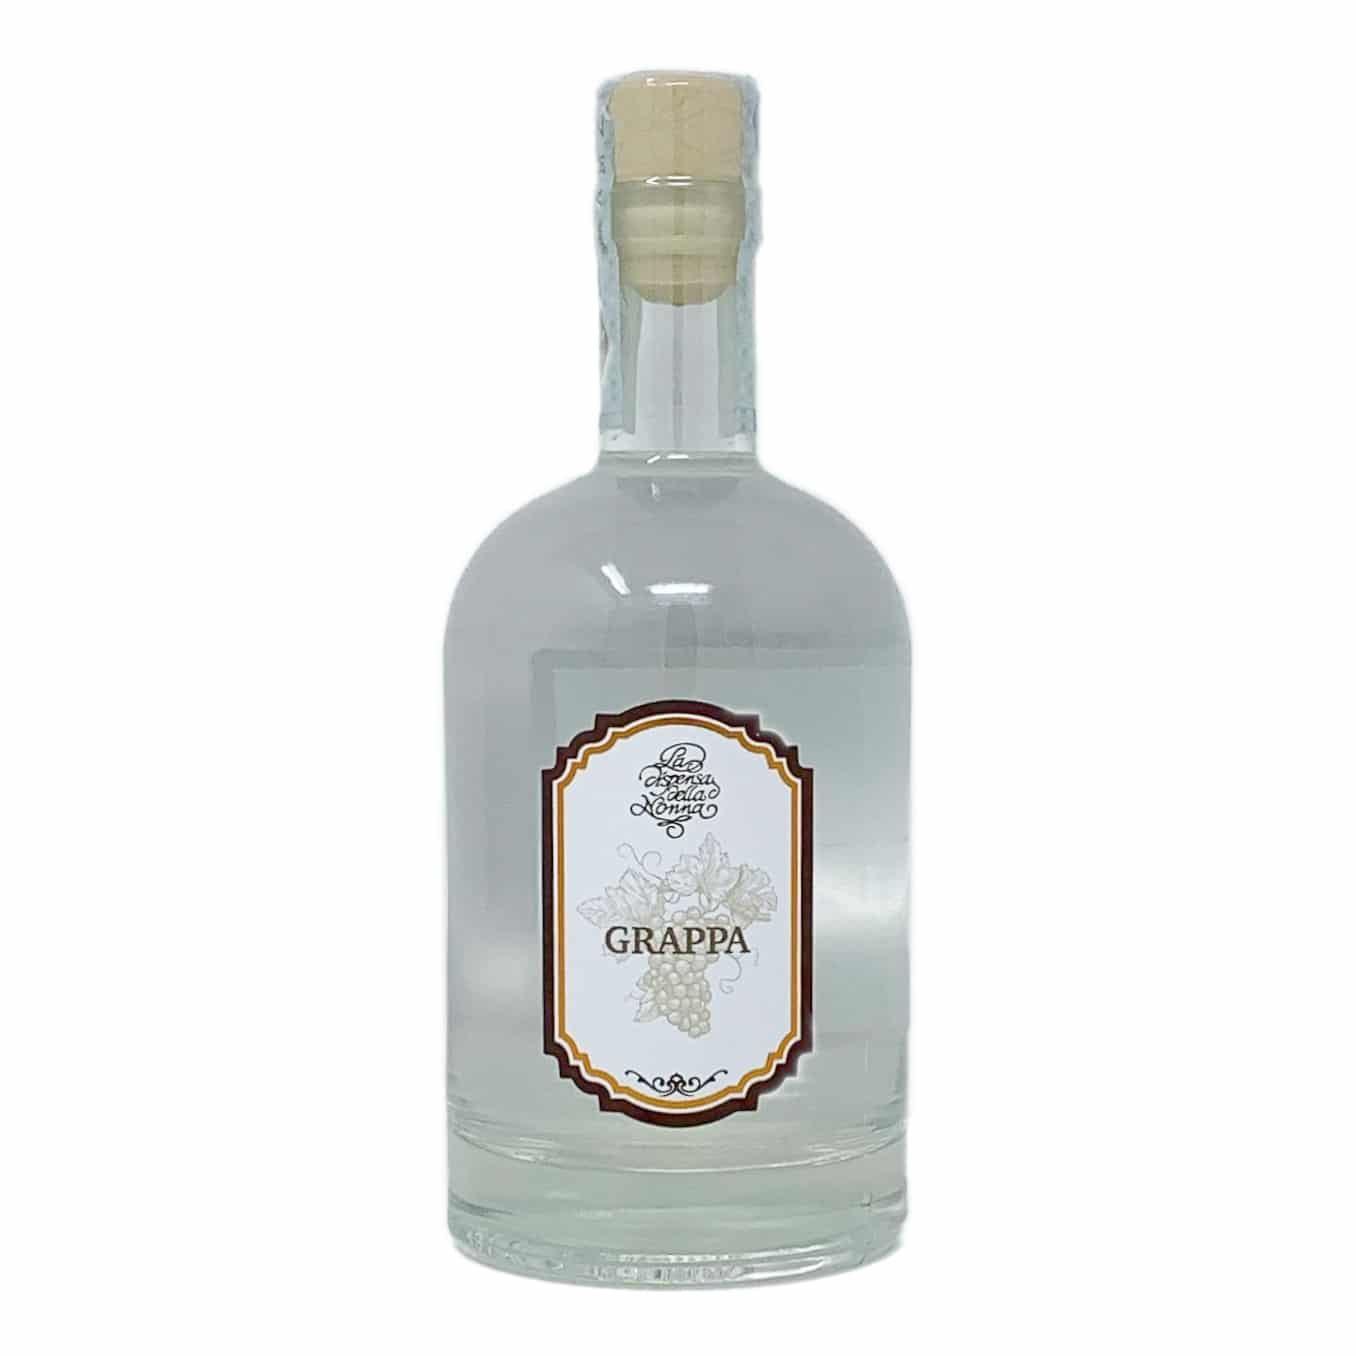 GRAPPA 50CL La Dispensa Della Nonna